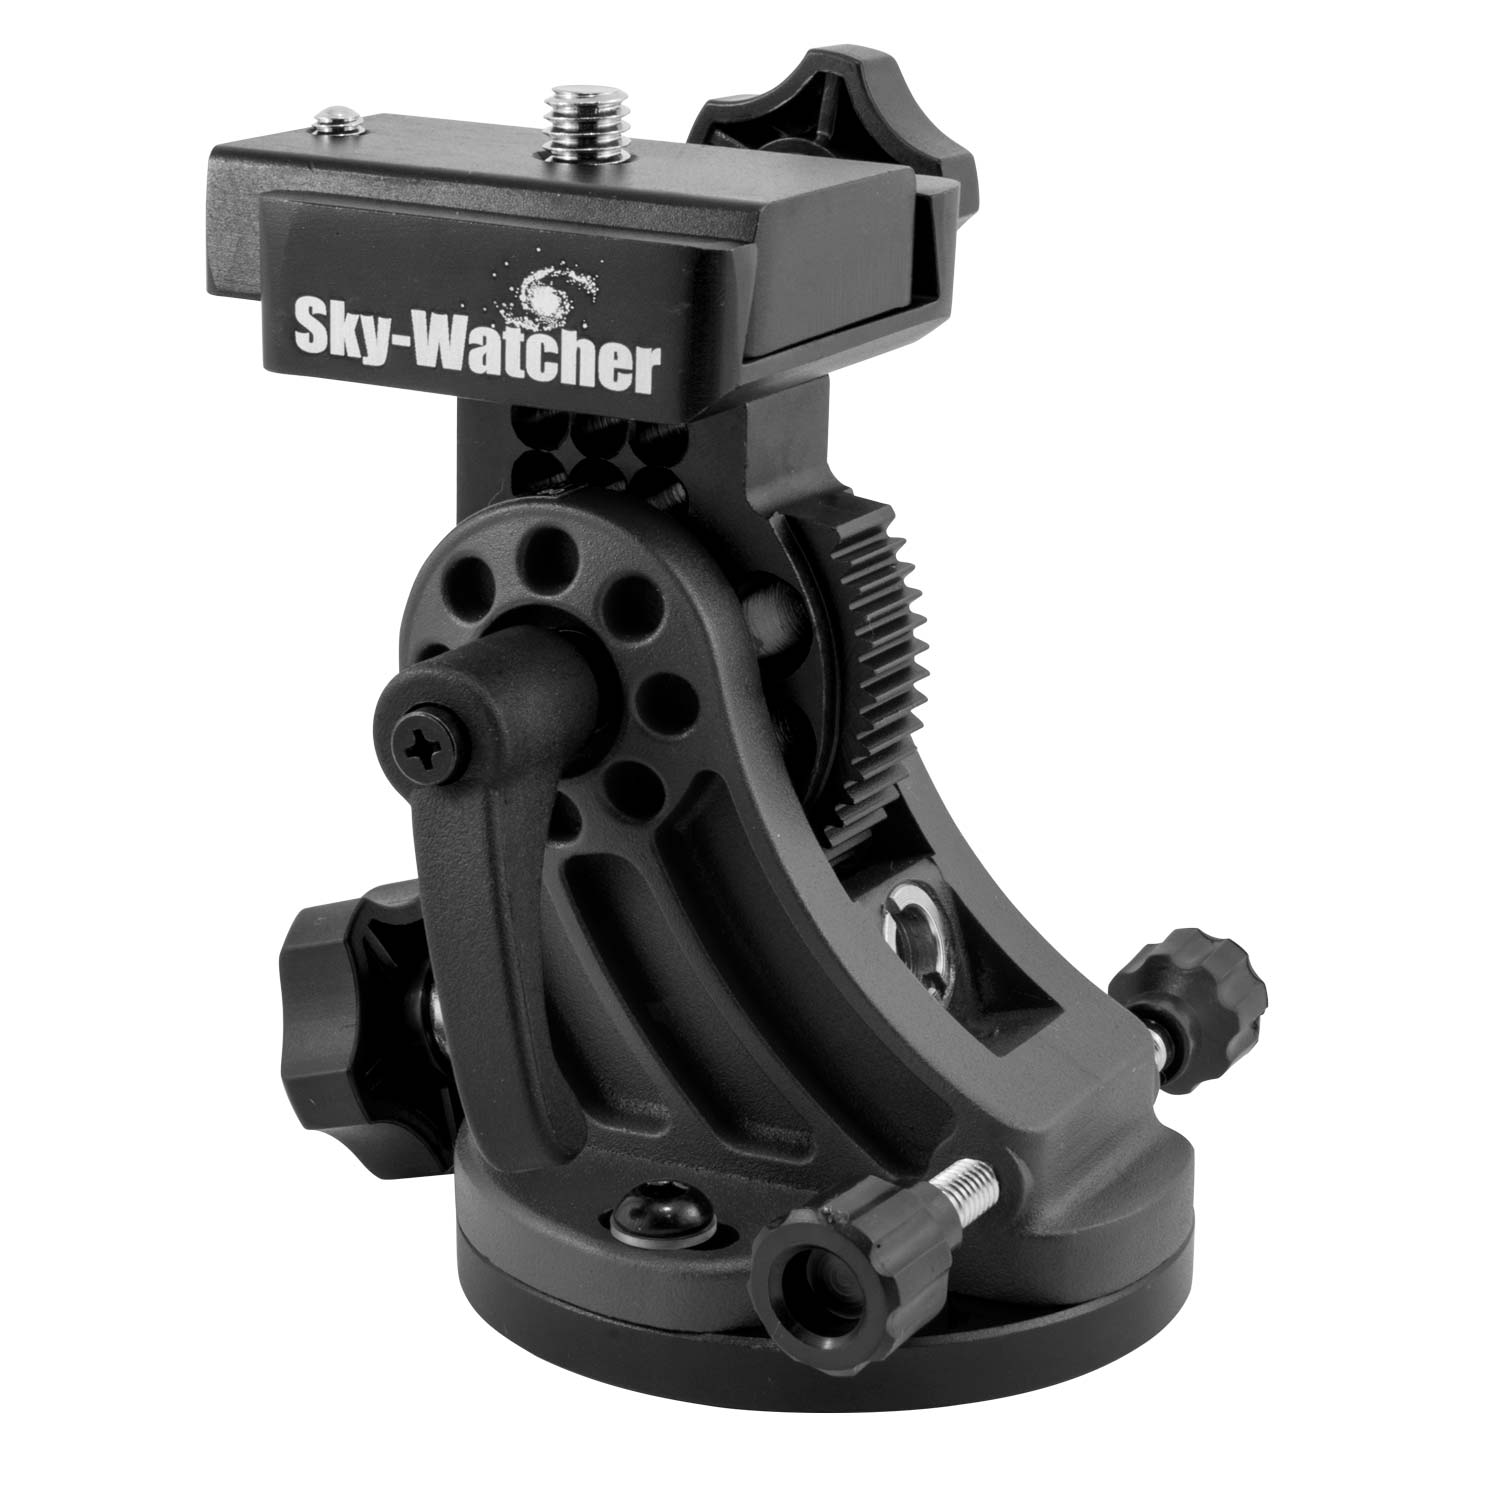 SWMINISA-WEDGE-R-Skywatcher-Wedge-Mini-Star-Adventurer-Wi-Fi-black